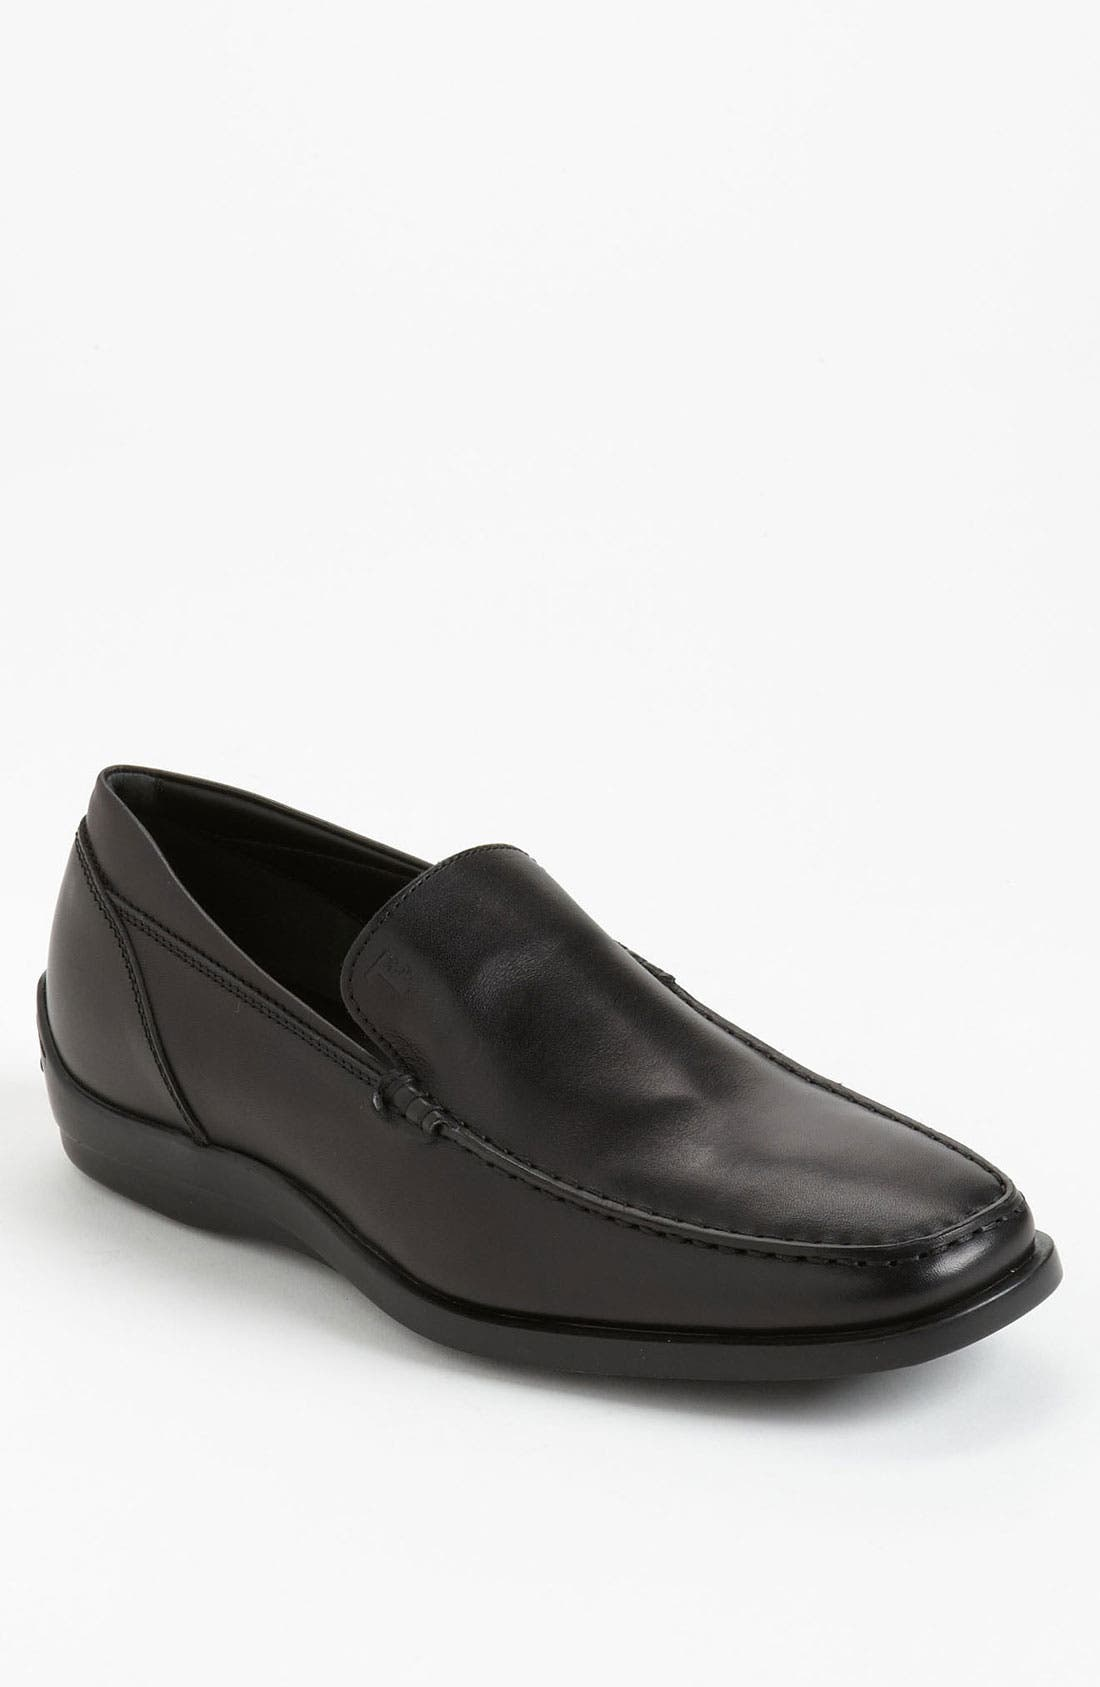 Alternate Image 1 Selected - Tod's 'Quinn' Venetian Loafer